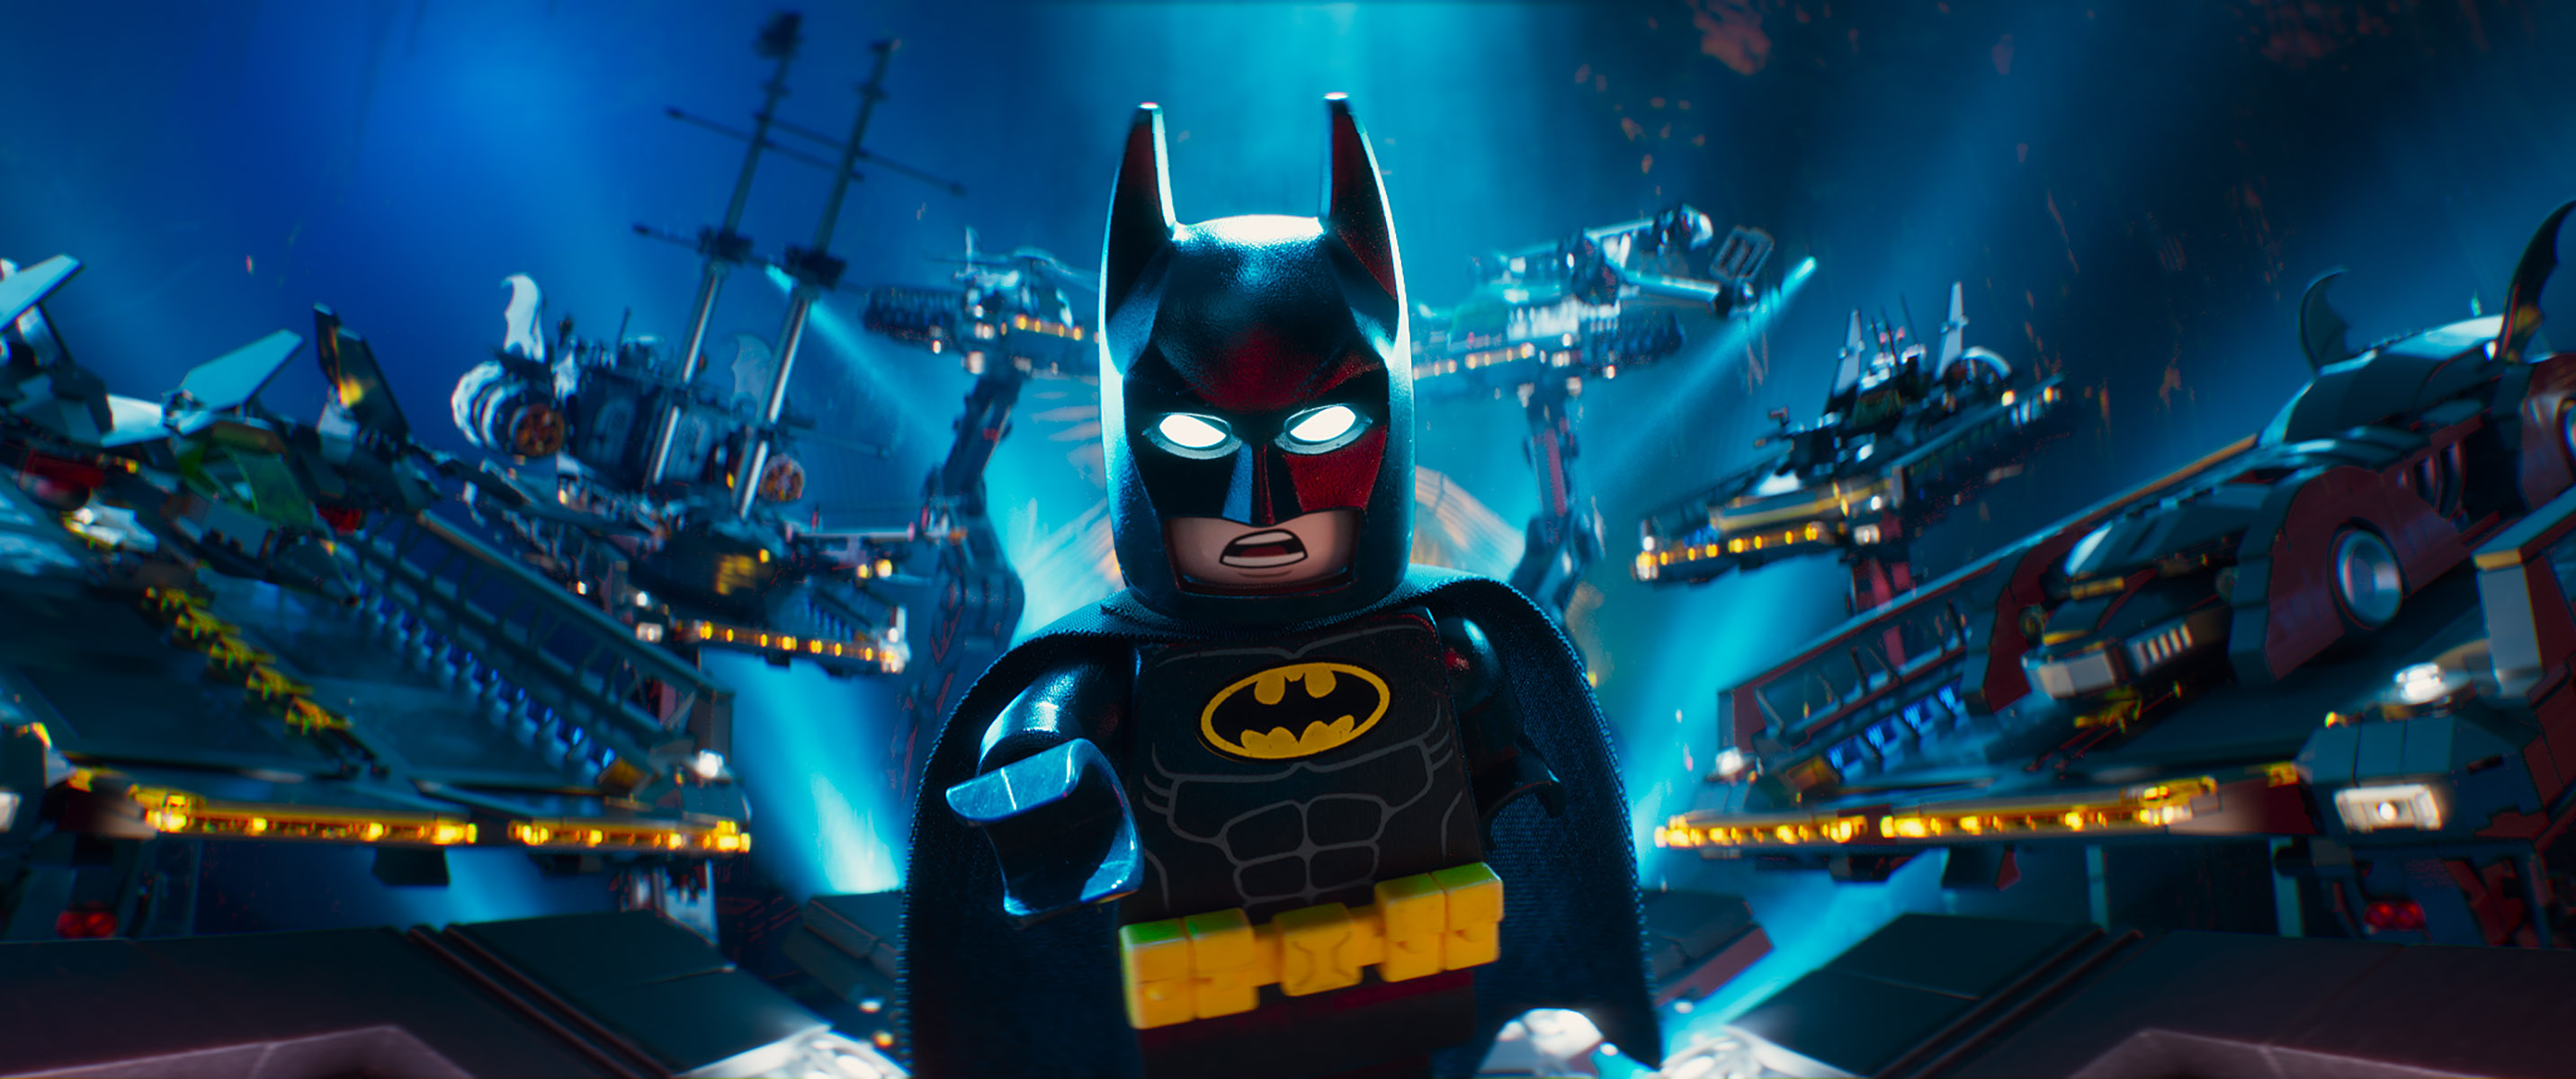 [Obrazek: lego-batman-movie-vehicles.jpg]